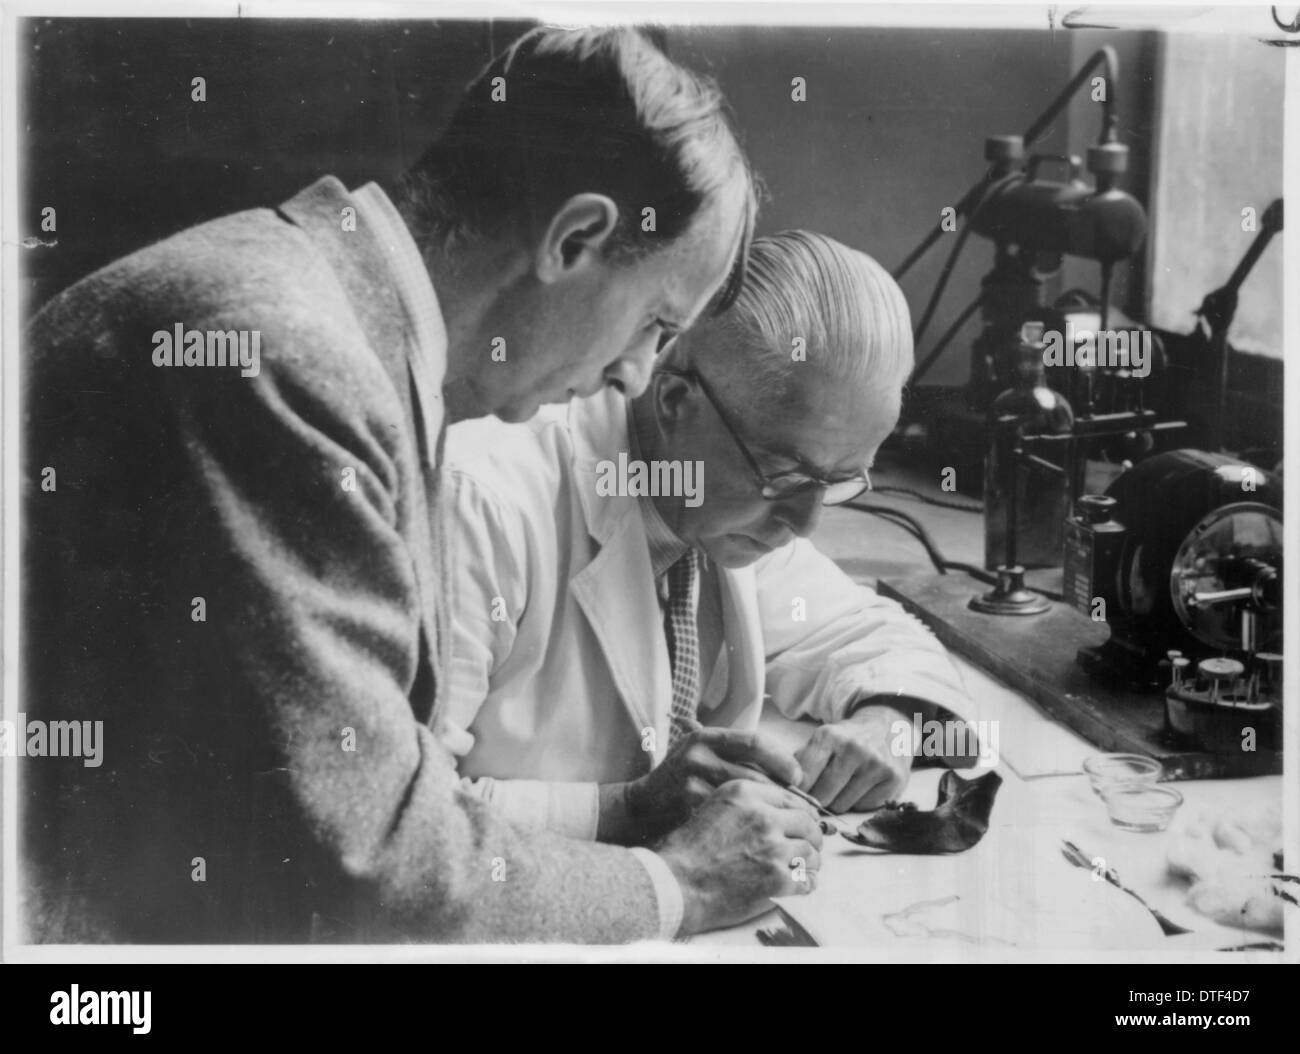 Preliminary flourine test of the Piltdown remains in 1949 - Stock Image